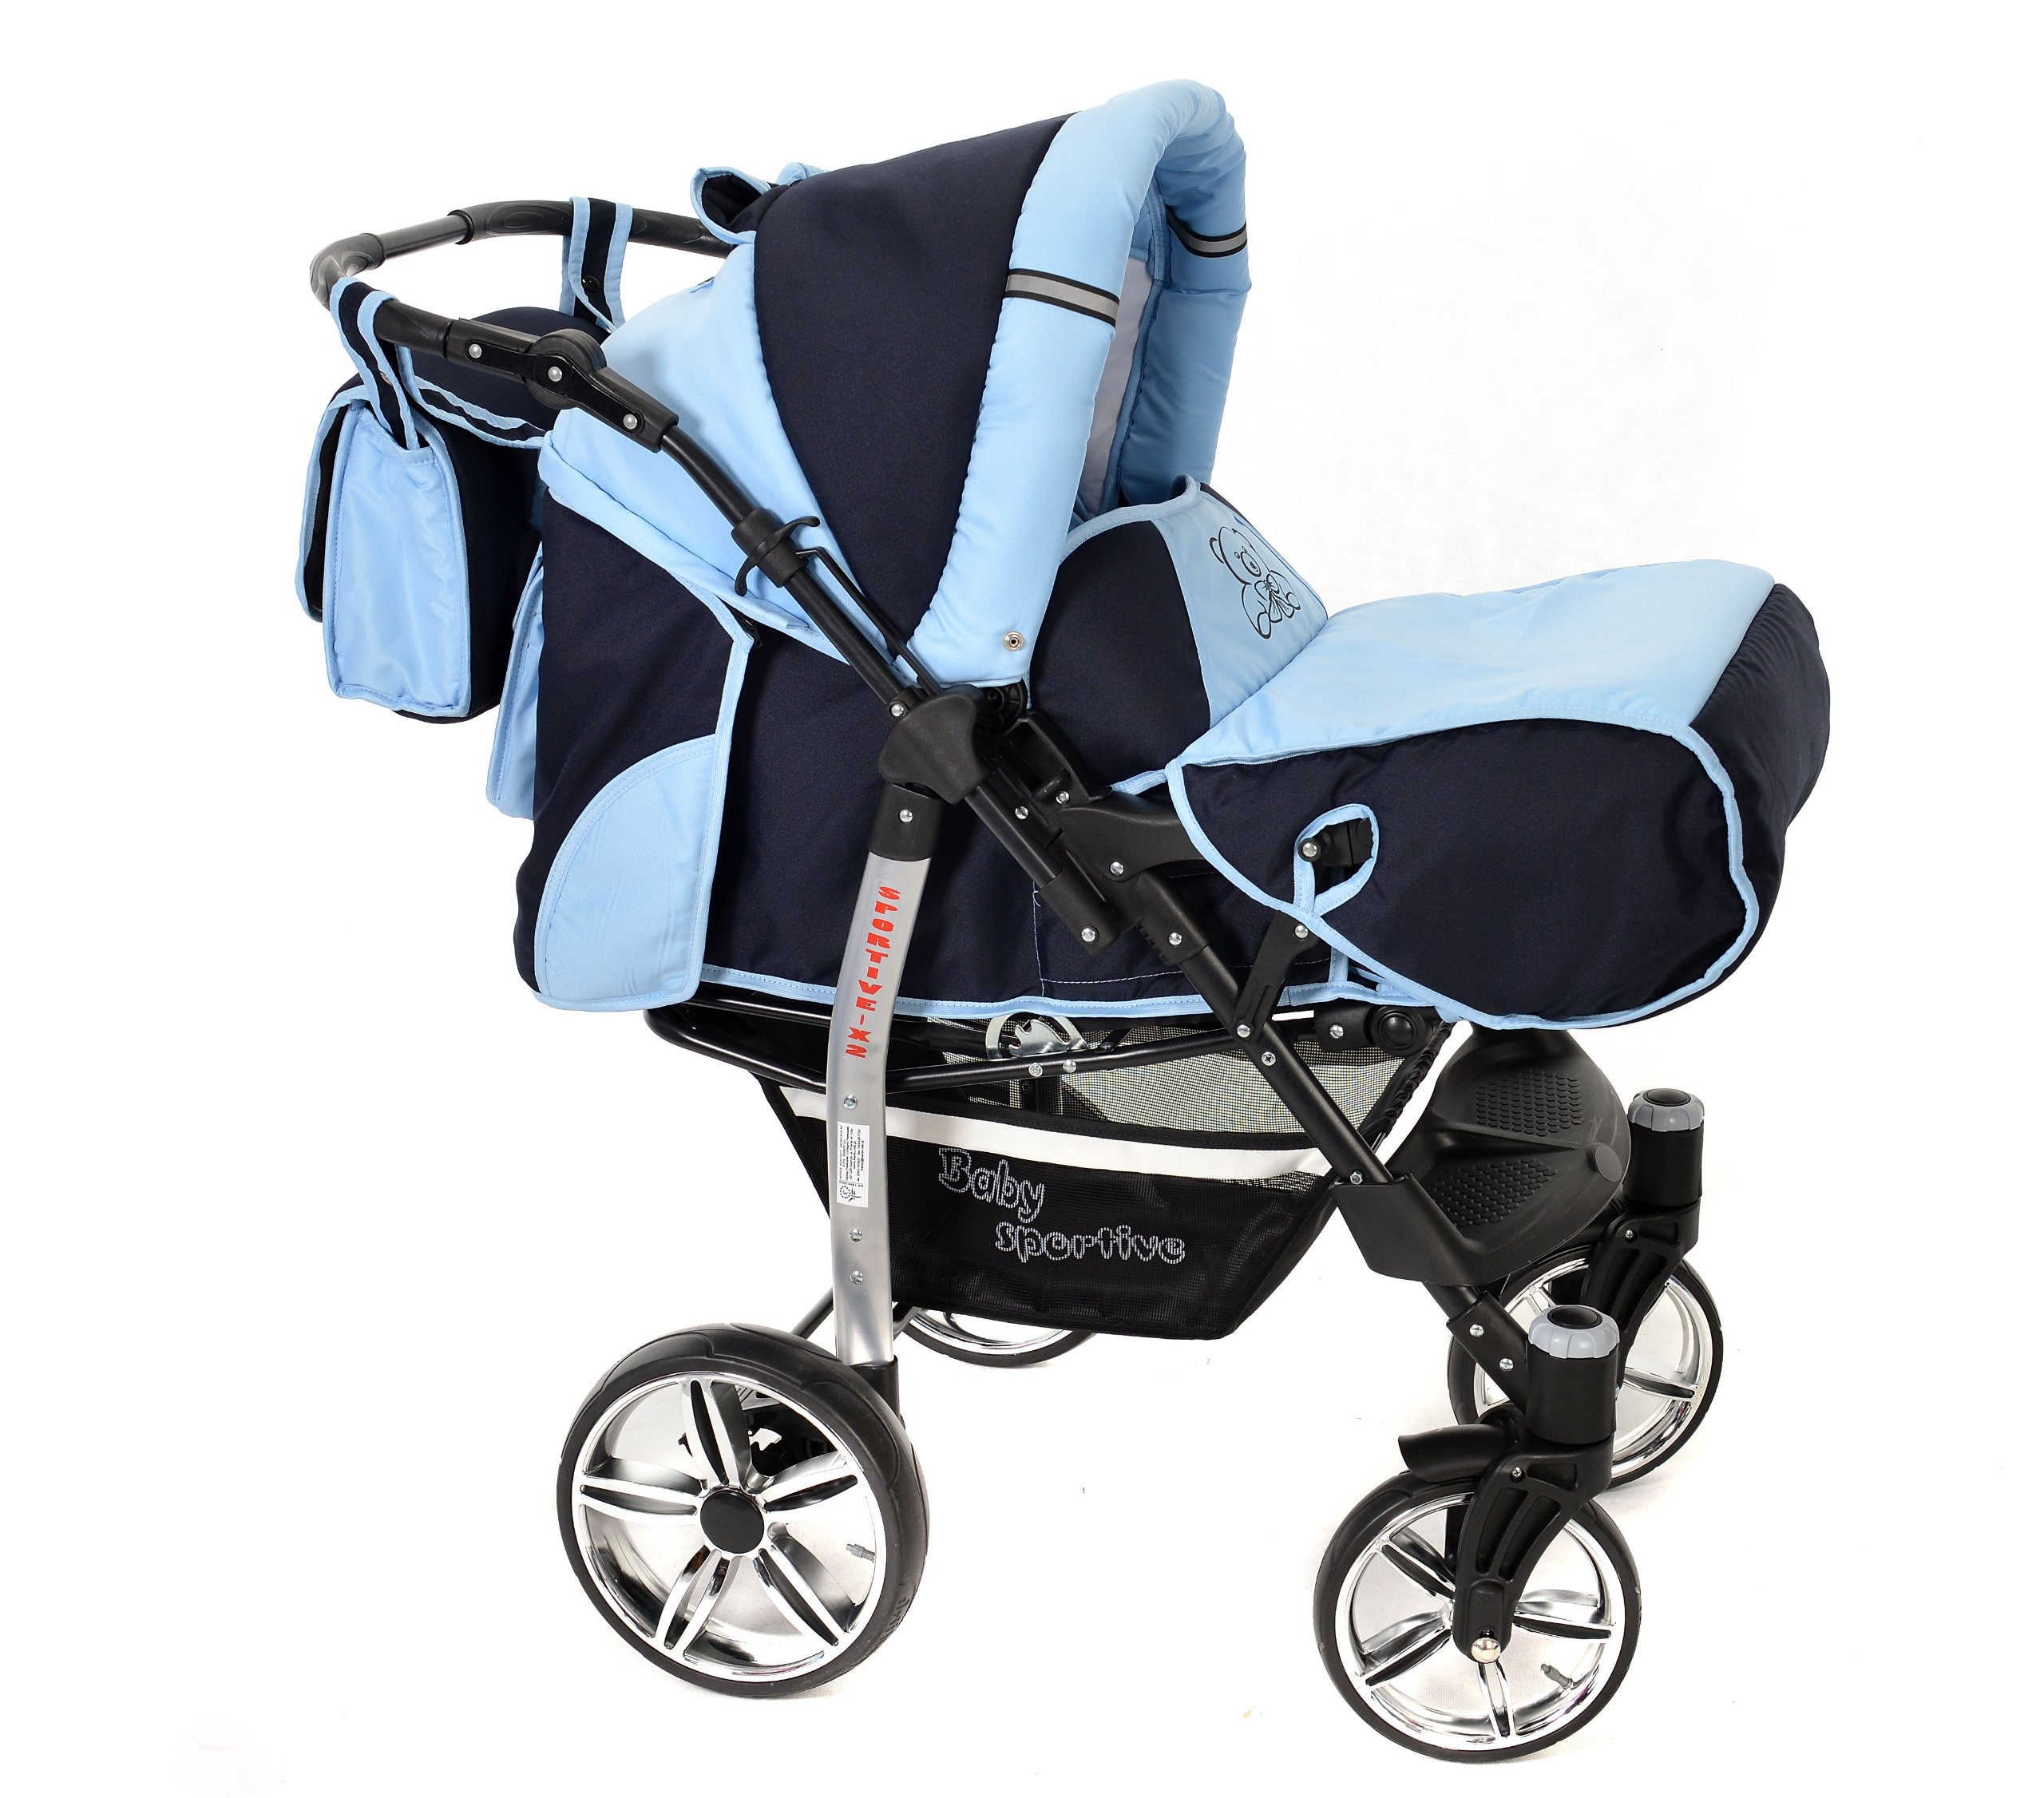 Sportive X2, 3-in-1 Travel System incl. Baby Pram with Swivel Wheels, Car Seat, Pushchair & Accessories (3-in-1 Travel System, Navy-Blue & Blue)  3 in 1 Travel System All in One Set - Pram, Car Carrier Seat and Sport Buggy + Accessories: carrier bag, rain protection, mosquito net, changing mat, removable bottle holder and removable tray for your child's bits and pieces Suitable from birth, Easy Quick Folding System; Large storage basket; Turnable handle bar that allows to face or rear the drive direction; Quick release rear wheels for easy cleaning after muddy walks Front lockable 360o swivel wheels for manoeuvrability , Small sized when folded, fits into many small car trunks, Carry-cot with a removable hood, Reflective elements for better visibility 3